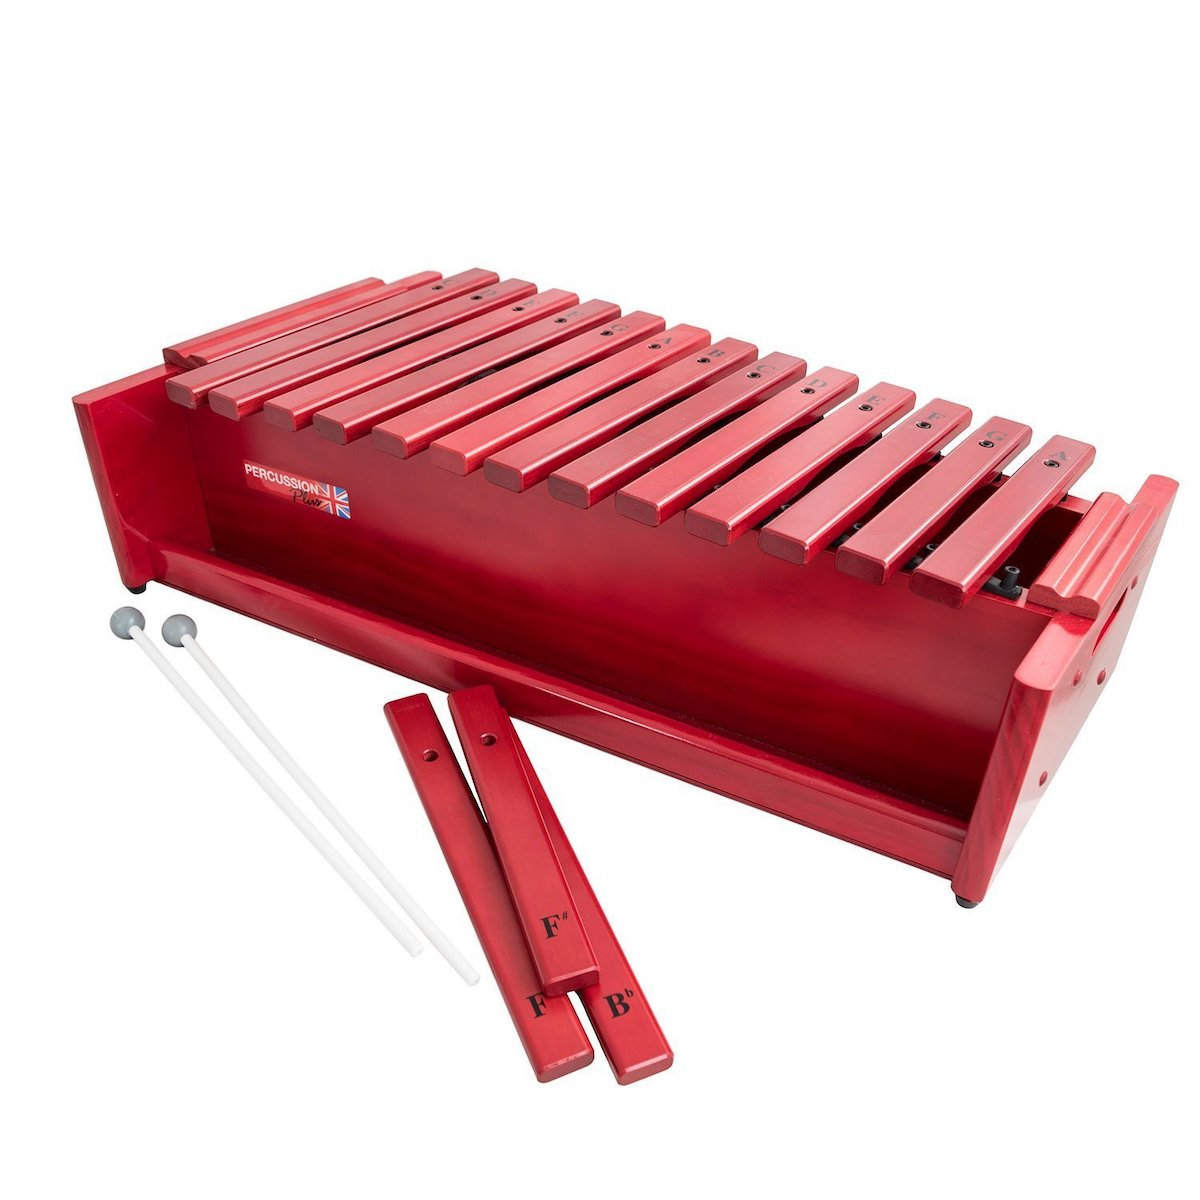 Percussion Plus Classic Red Box Alto Diatonic Xylophone